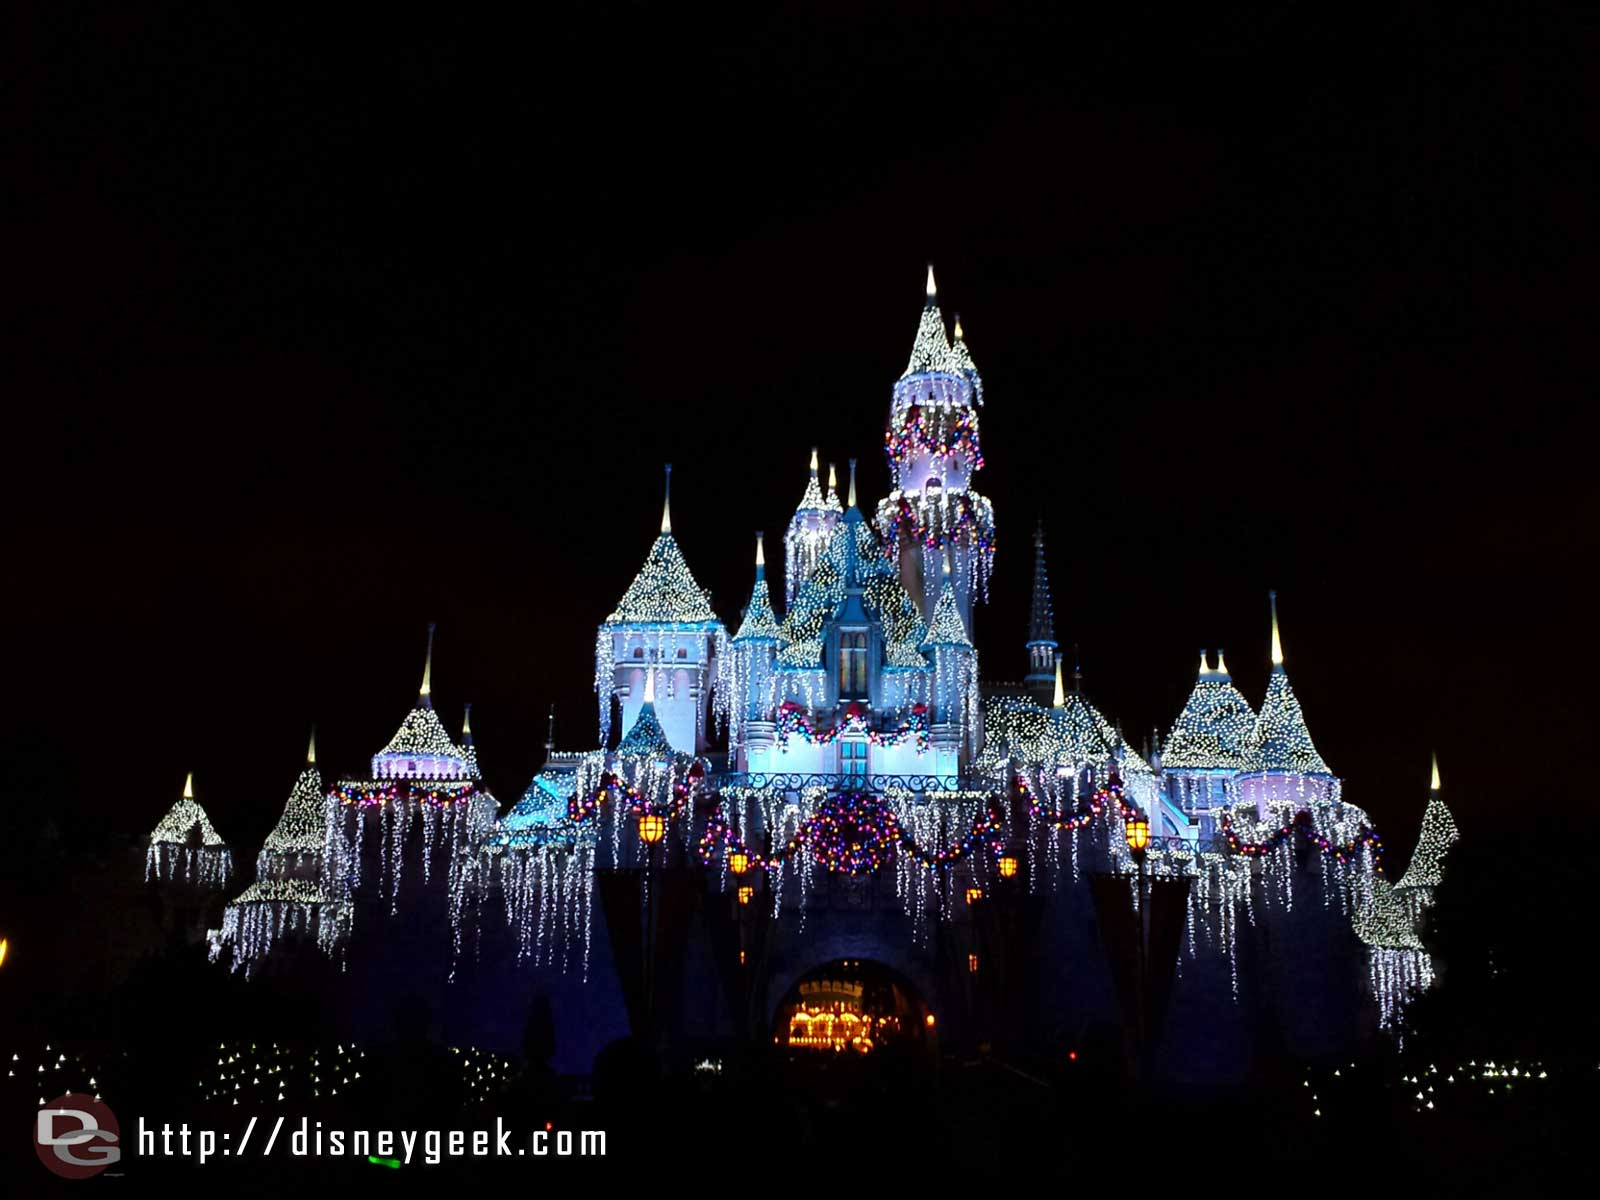 Sleeping Beauty Castle with the snow/ice lights on #Disneyland